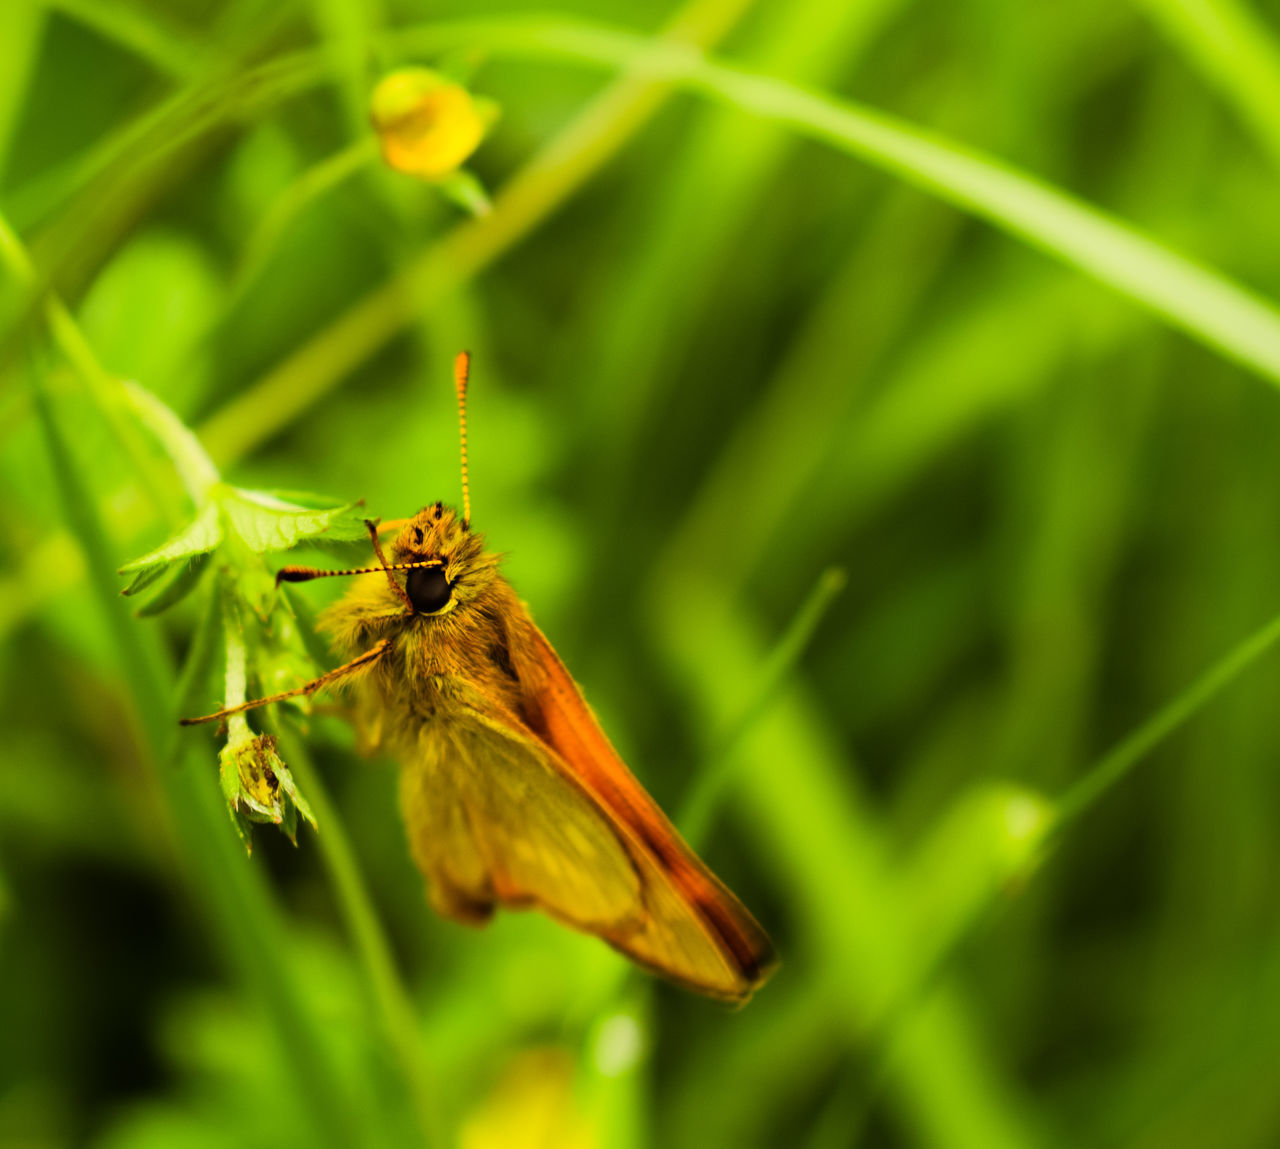 one animal, insect, animal themes, animals in the wild, nature, animal wildlife, green color, close-up, day, plant, no people, growth, outdoors, beauty in nature